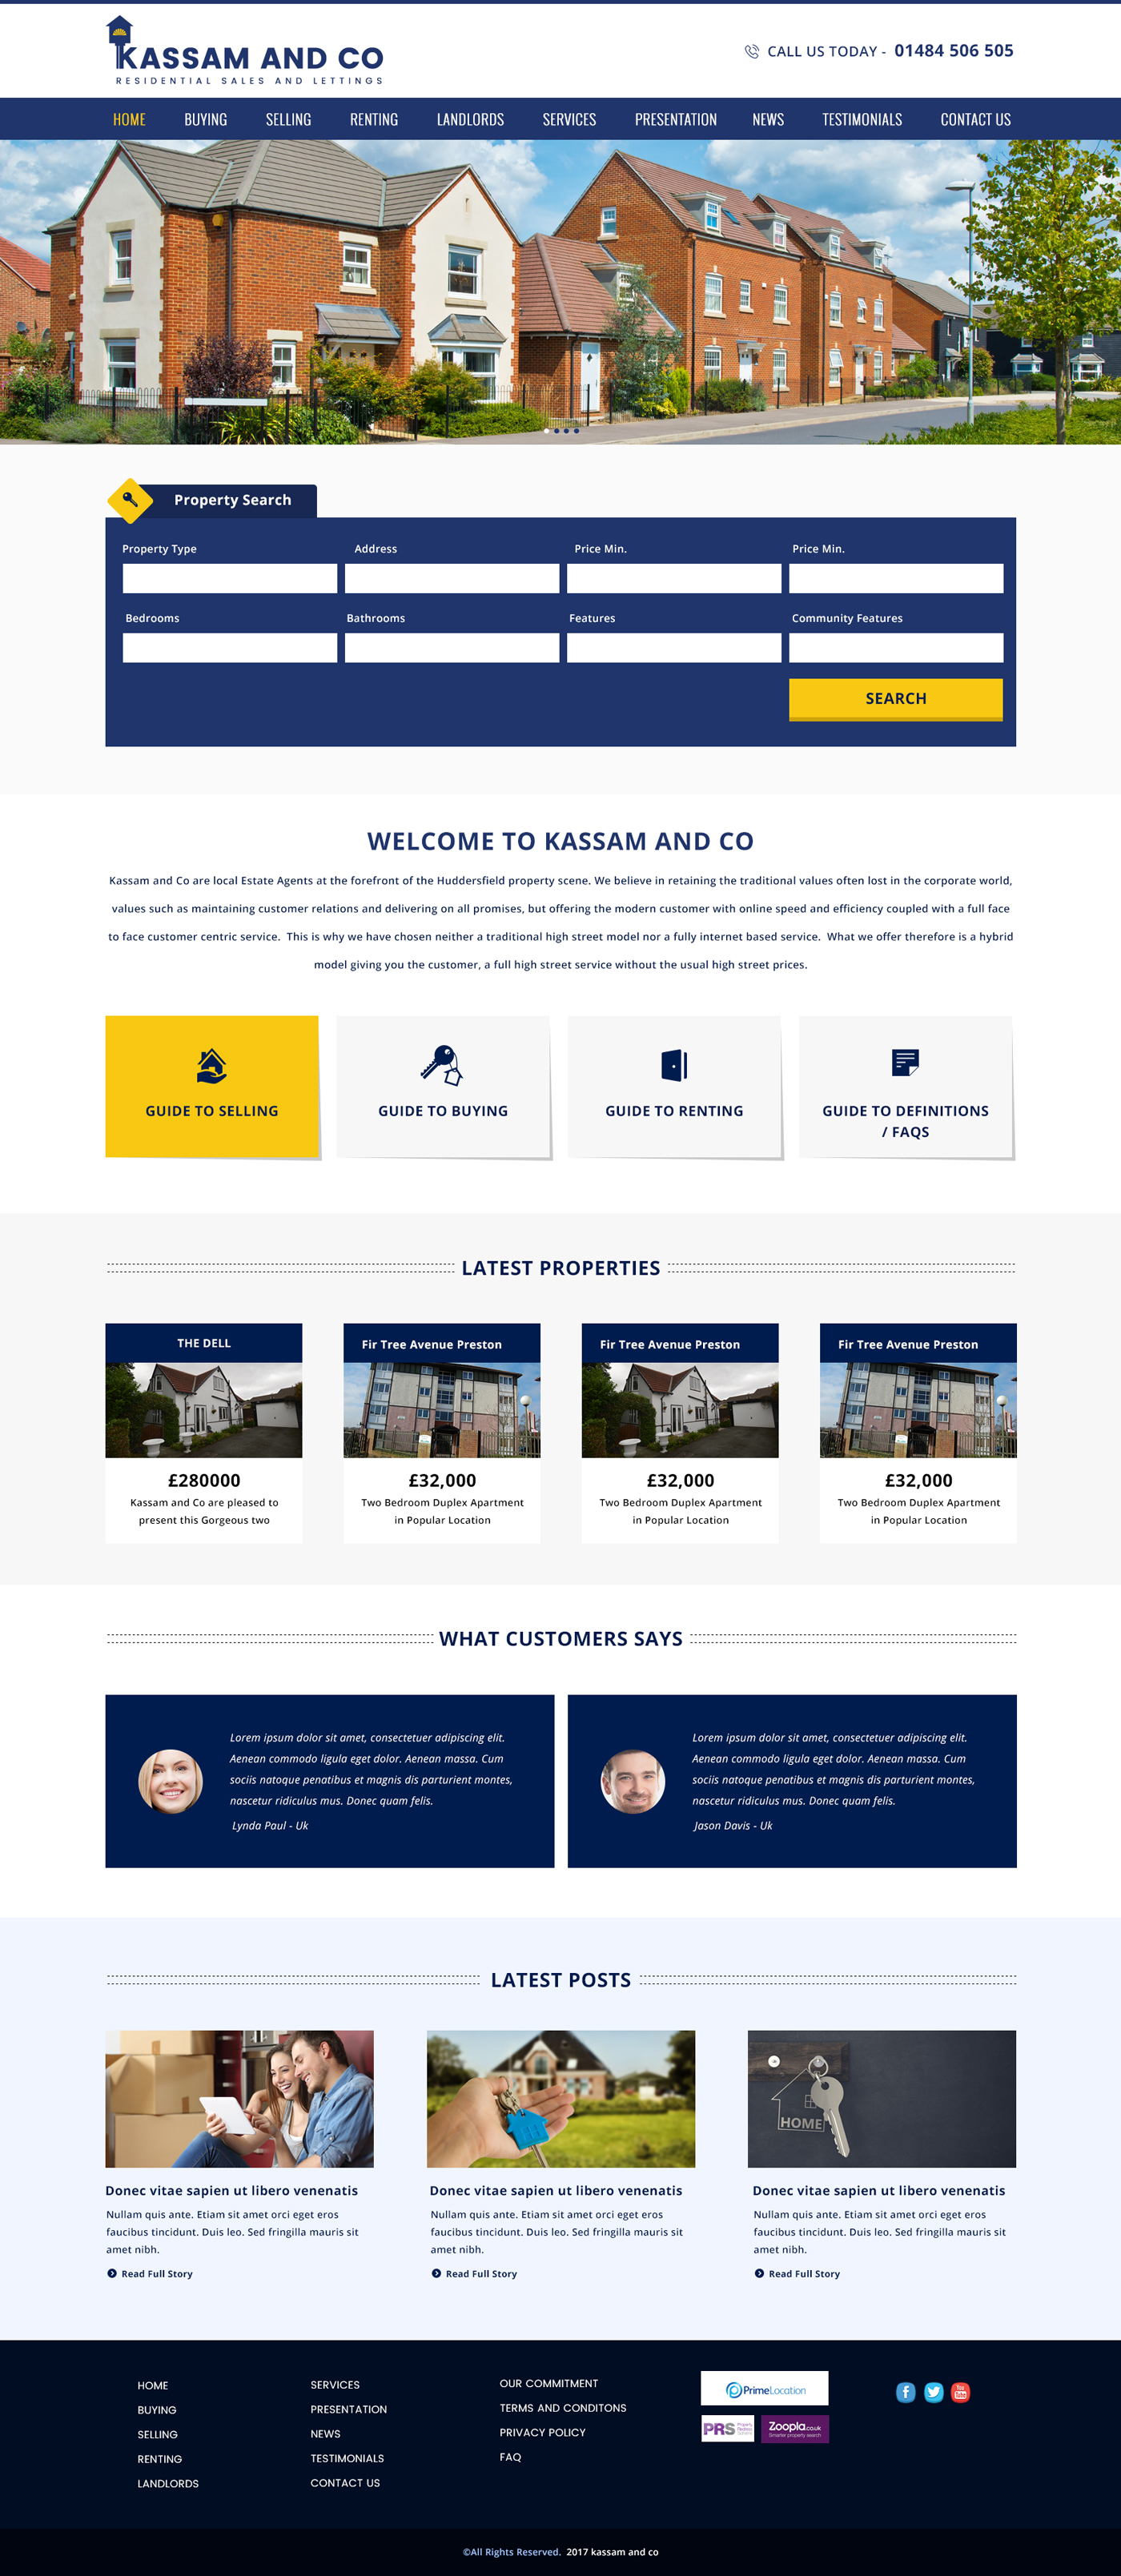 Kassam & Co Property, Property Website Design, Property Web Design